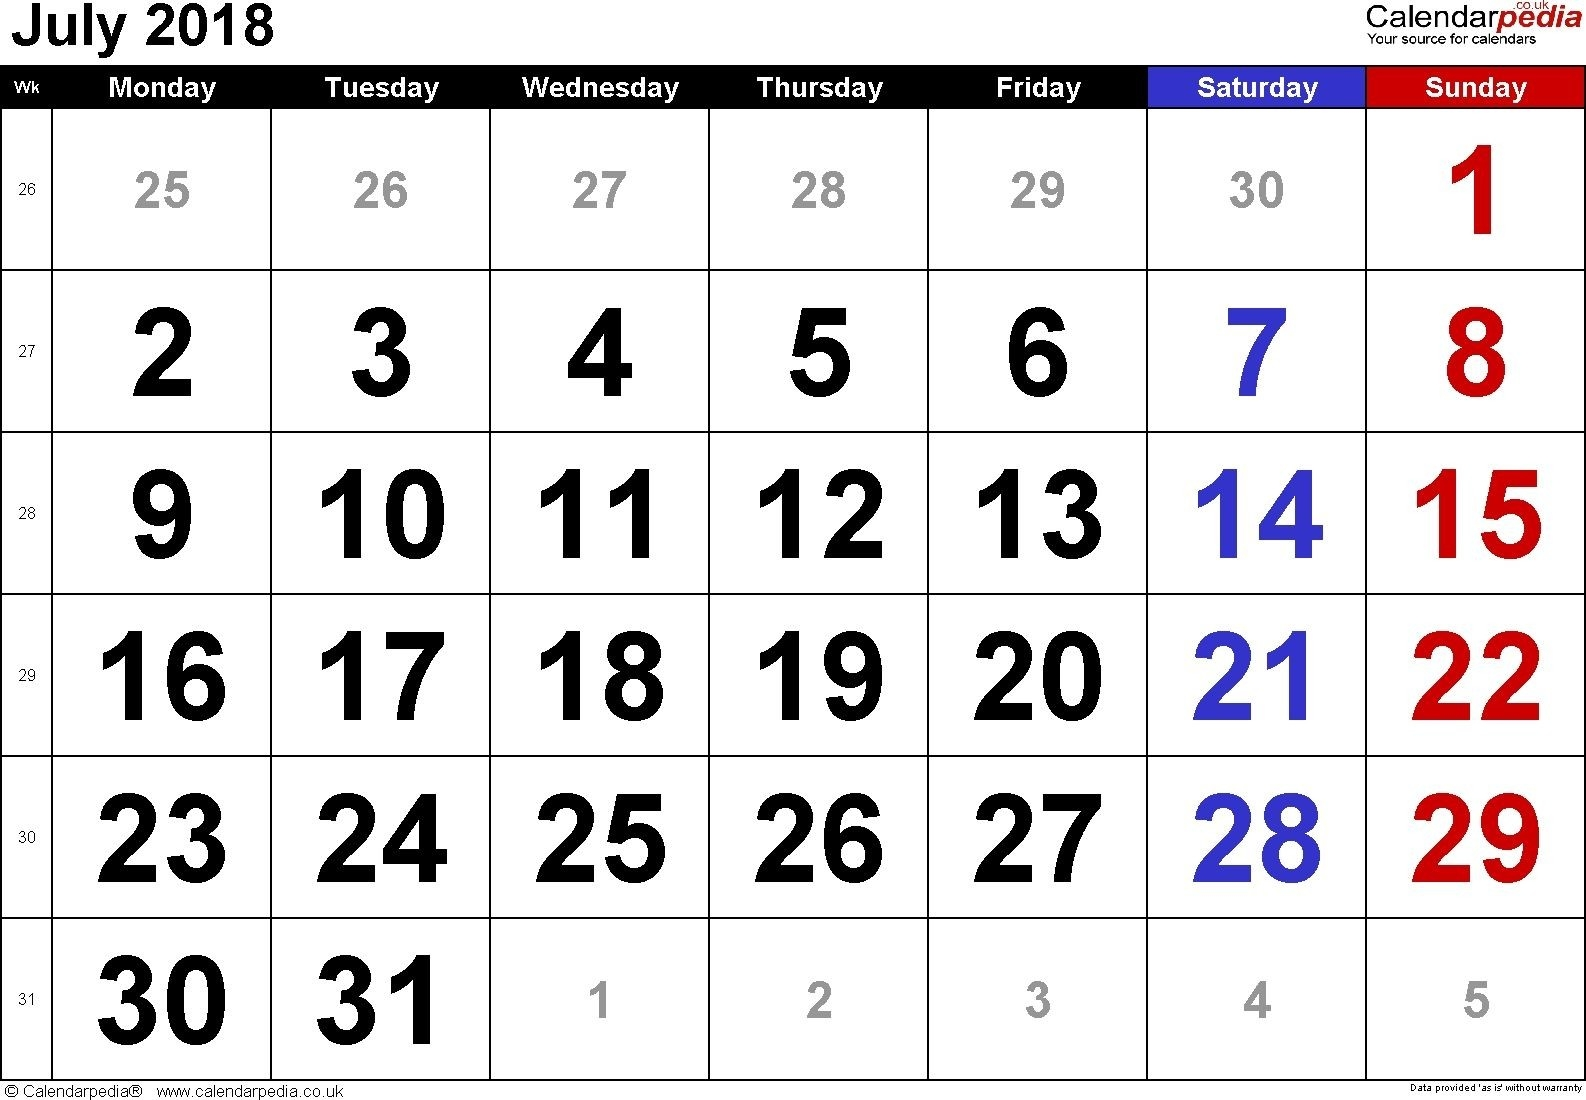 Free Printable Calendar Large Numbers In 2020 | Printable  If Given Depo Shot November 30 2021 When Is Next Shot